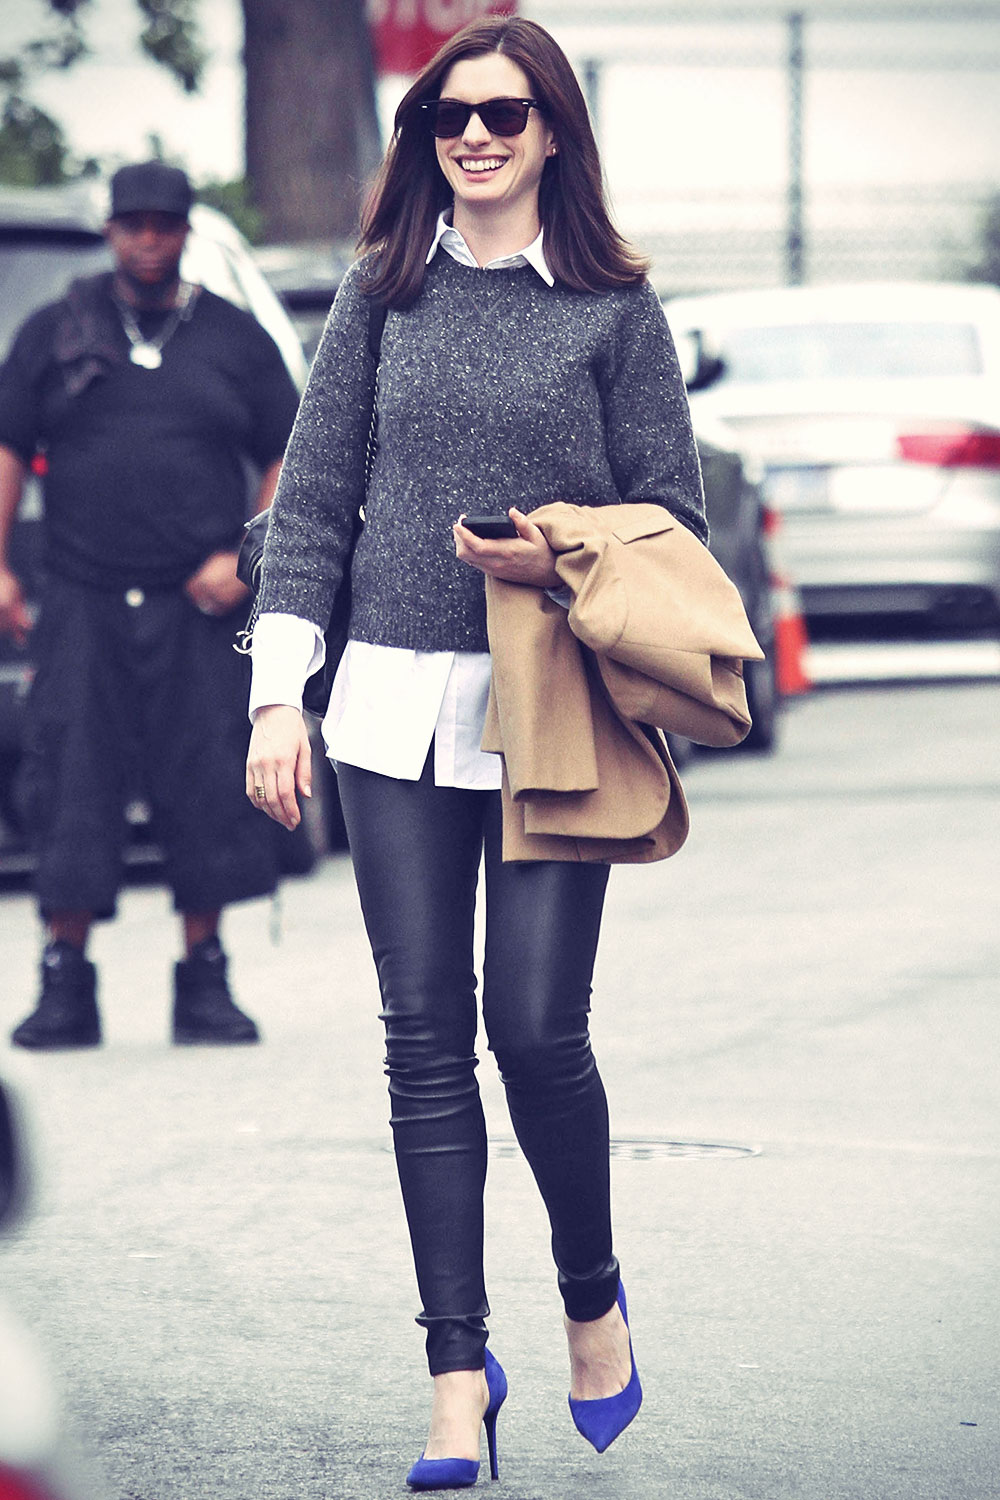 Anne Hathaway The Intern set candids